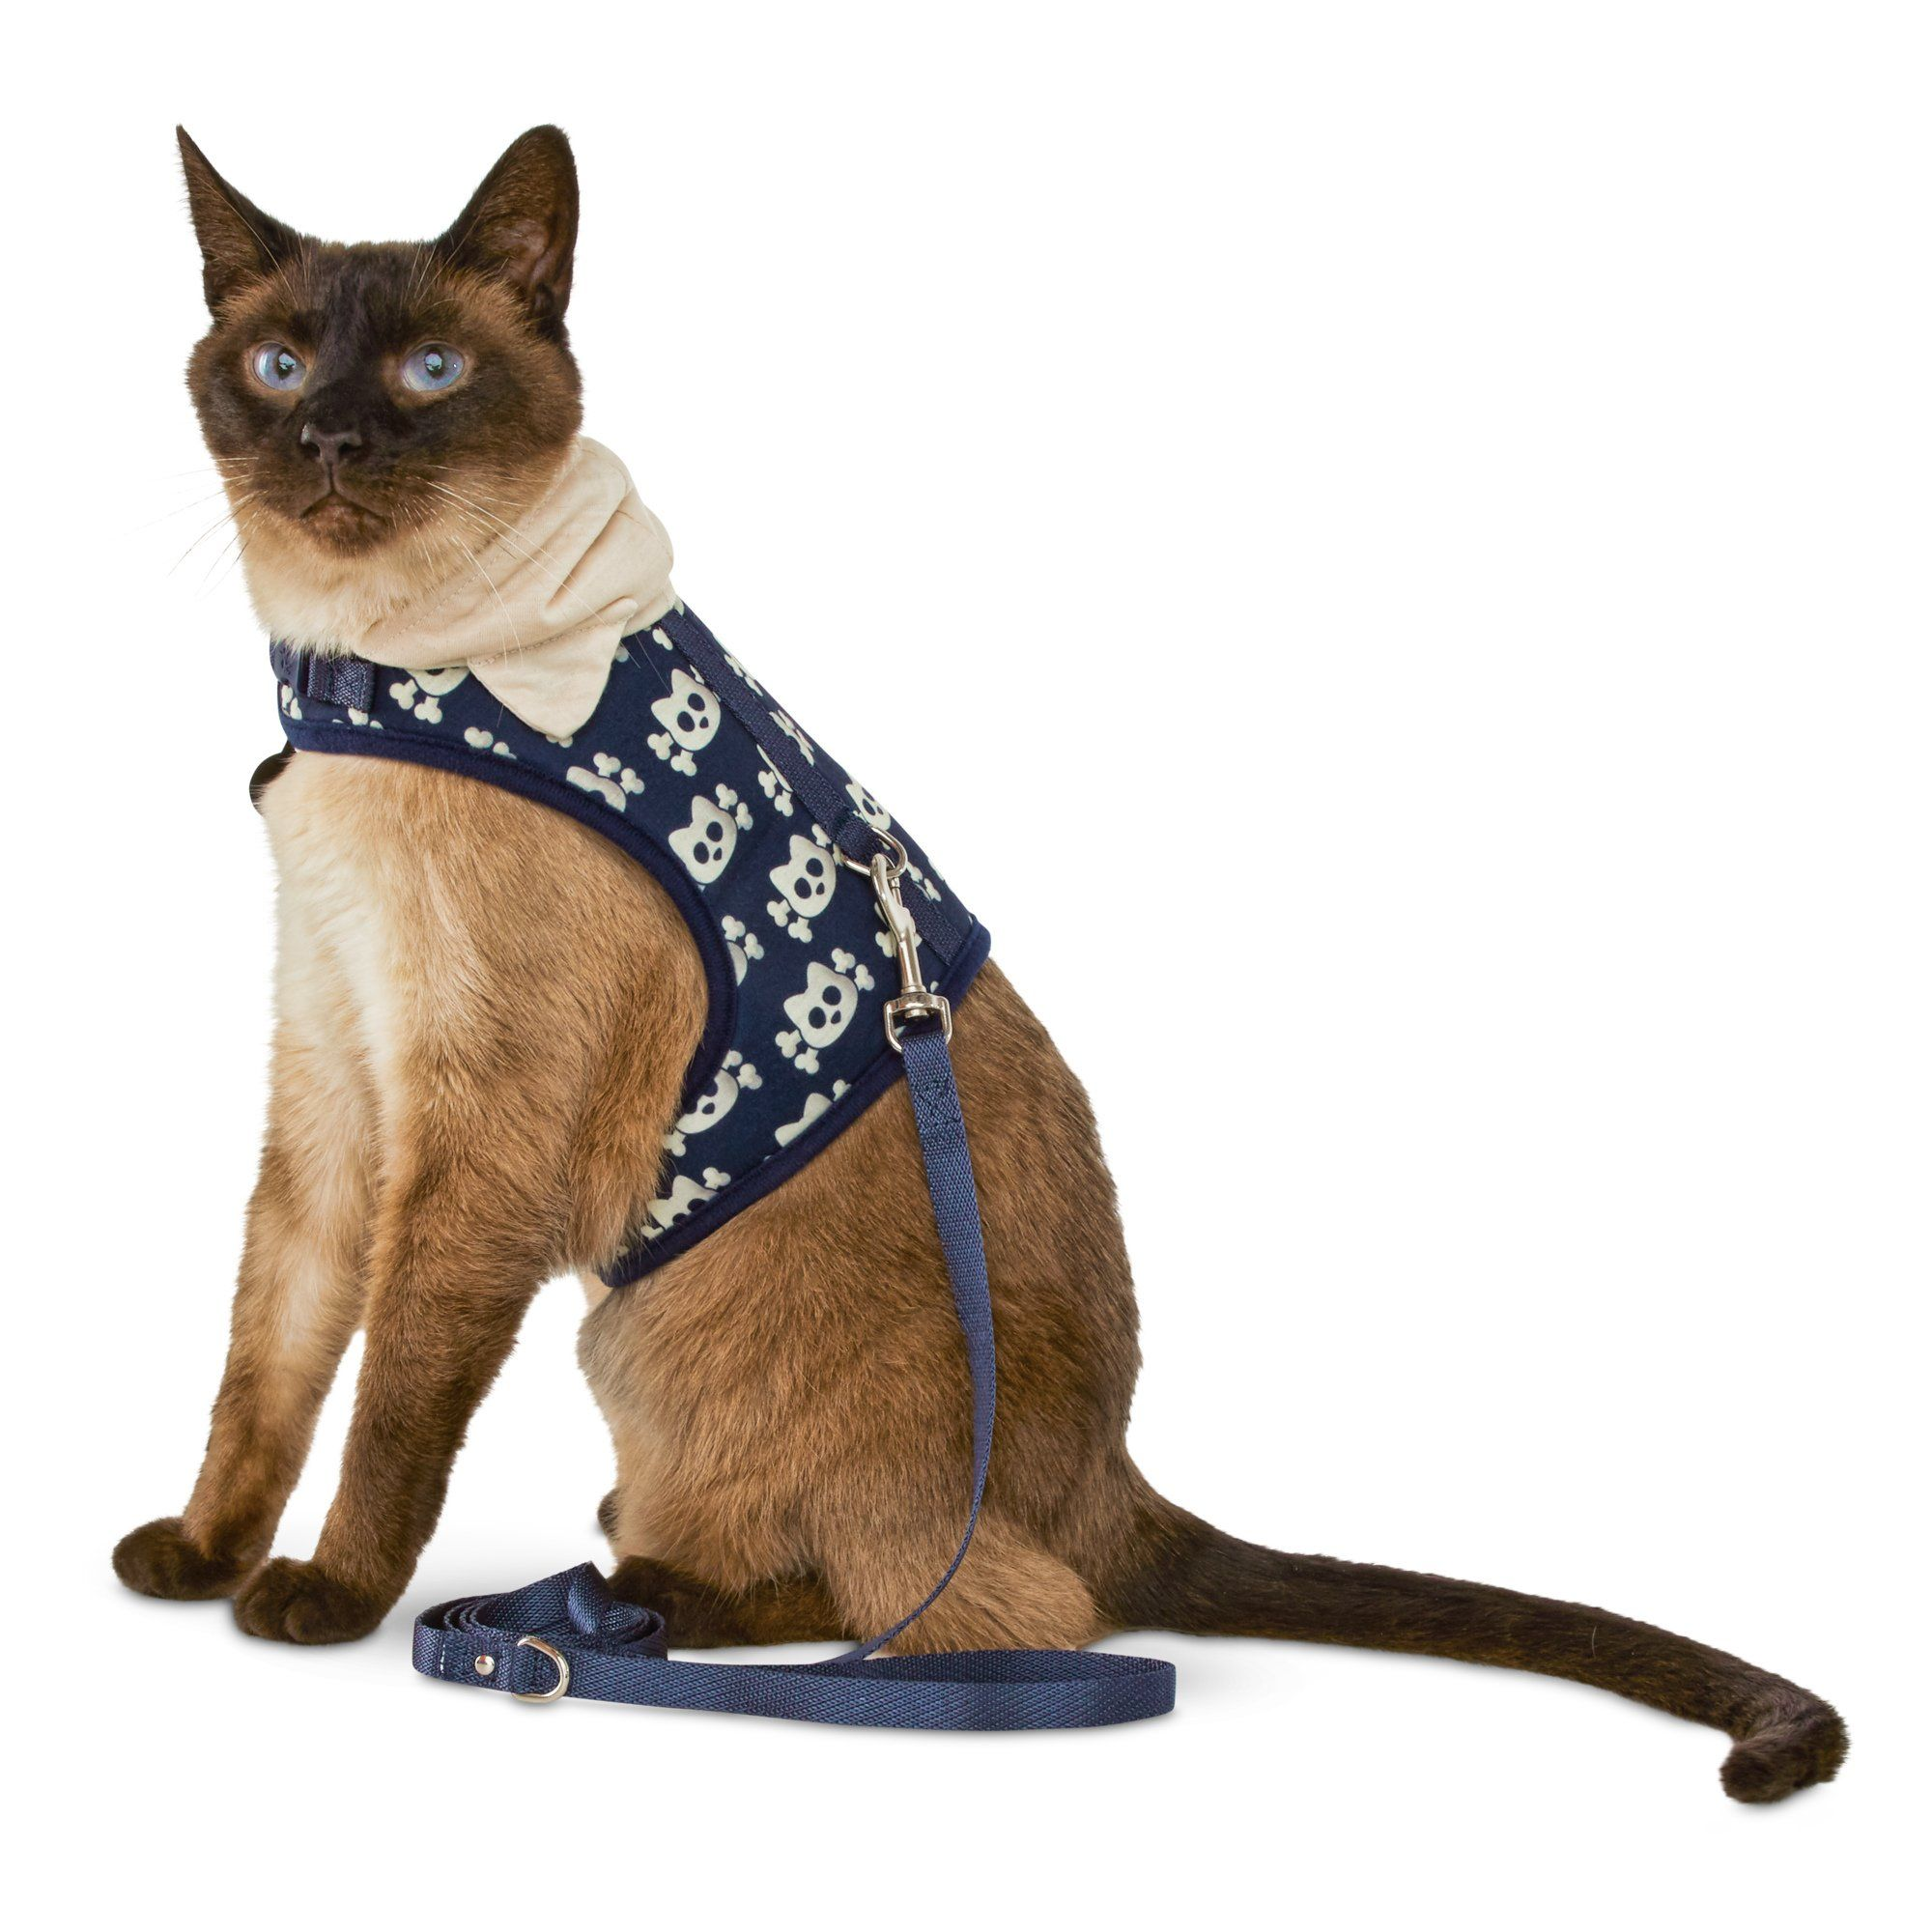 Bond Co Kitty And Crossbones Hooded Cat Harness And Leash Set Petco Cat Harness Cat Collars Kitty